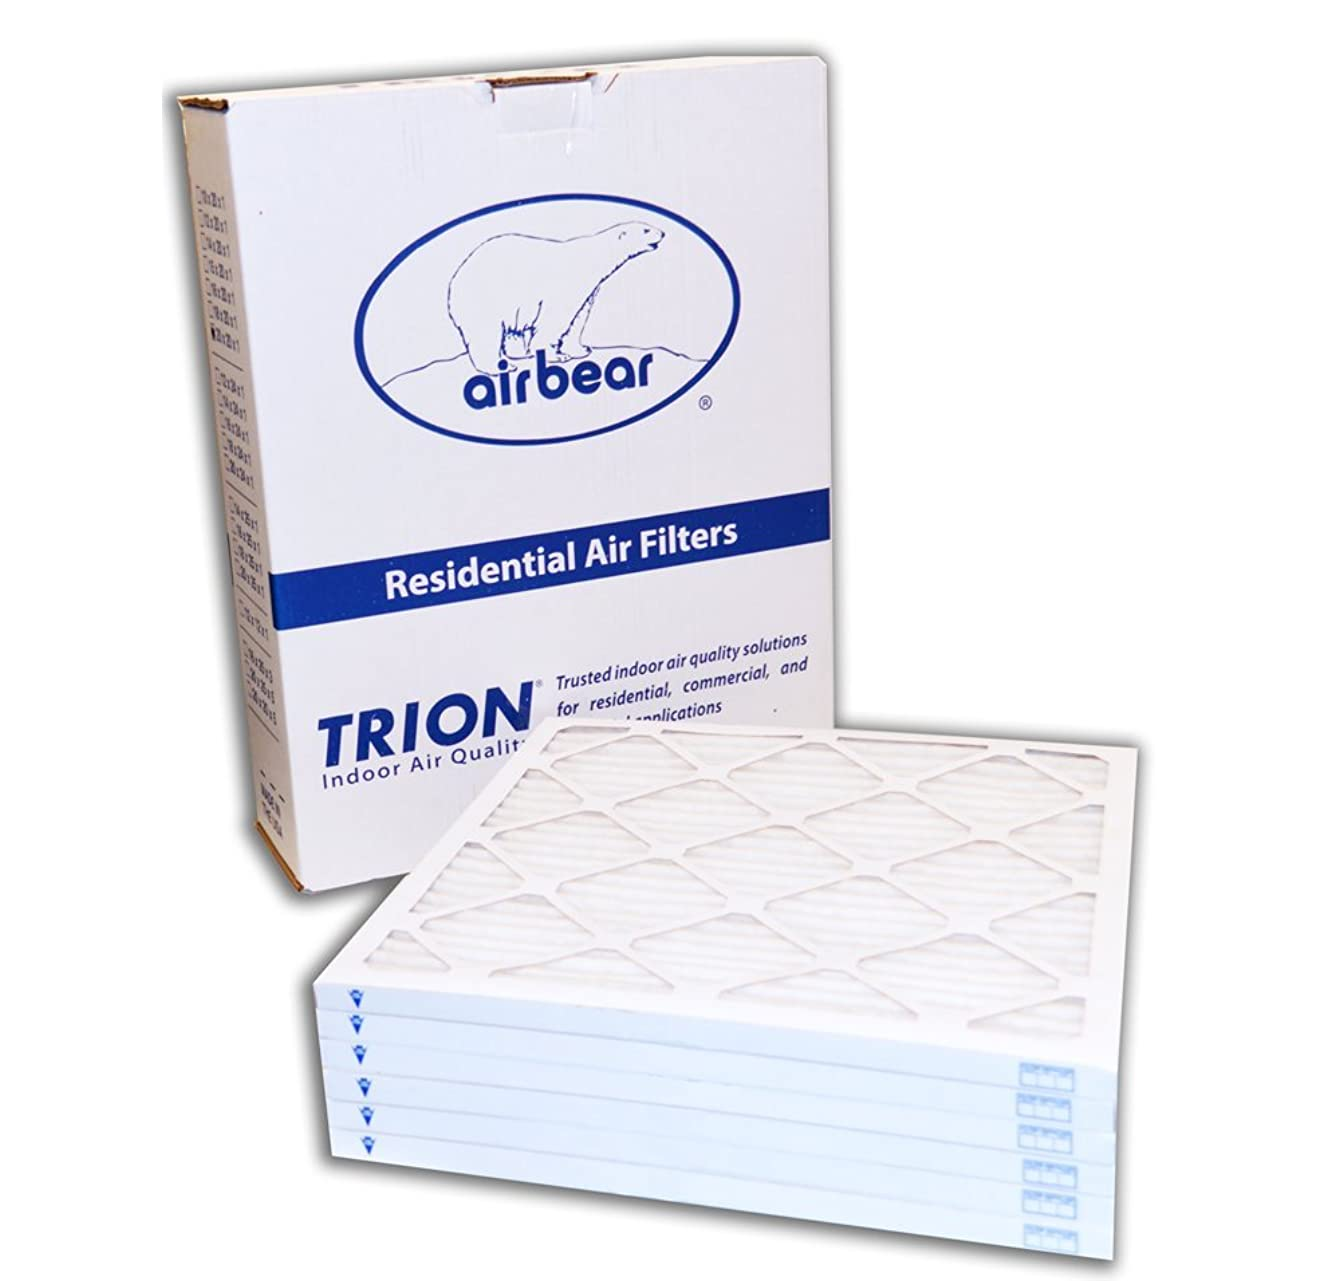 Trion Air Bear 20x25x1 MERV 8 Pleated HVAC Filter, 6 Pack